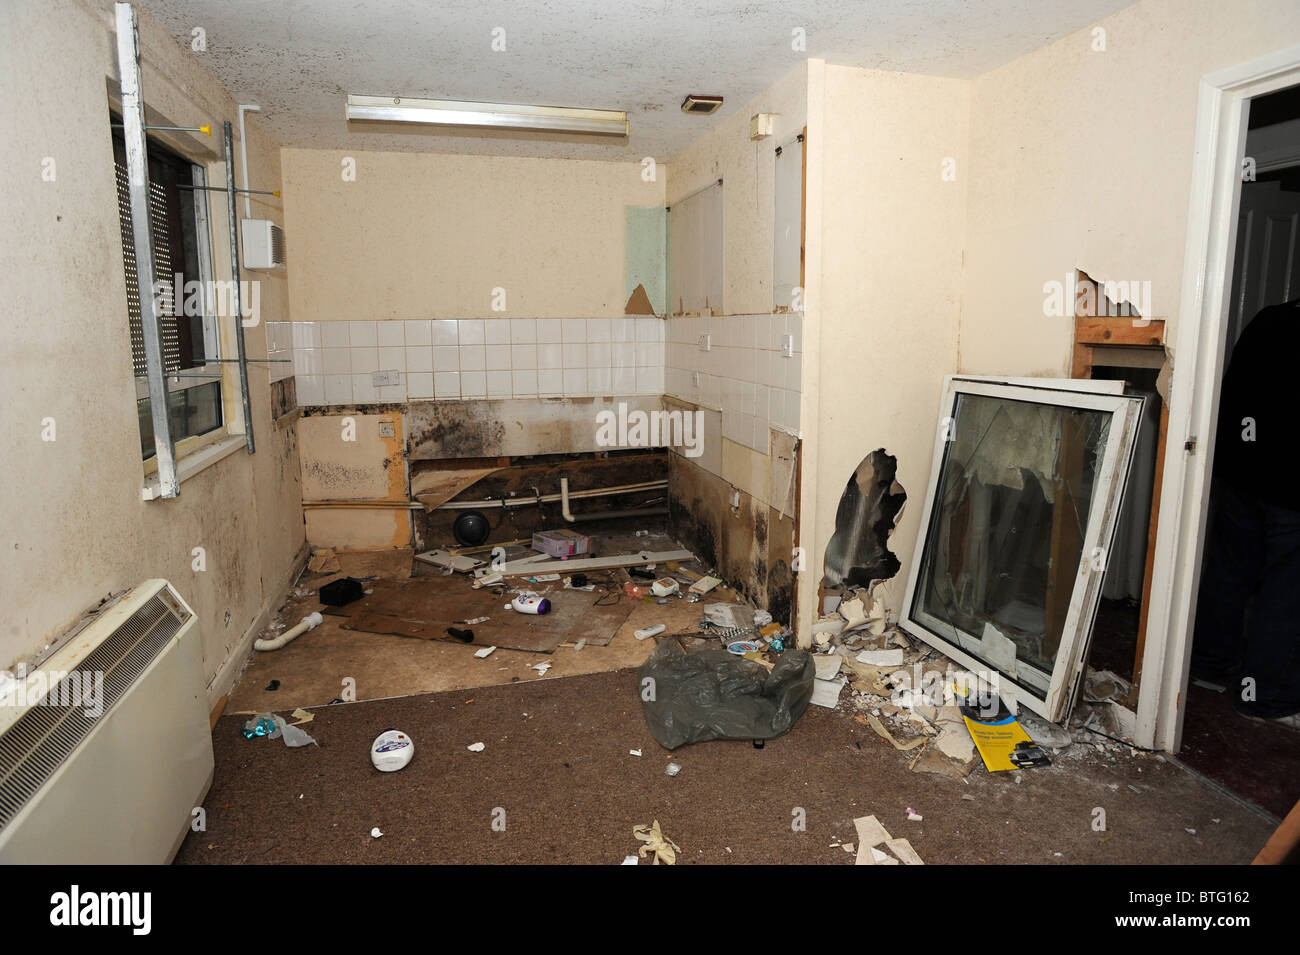 Damage left to a large council owned house after illegal squatters wrecked it - Stock Image